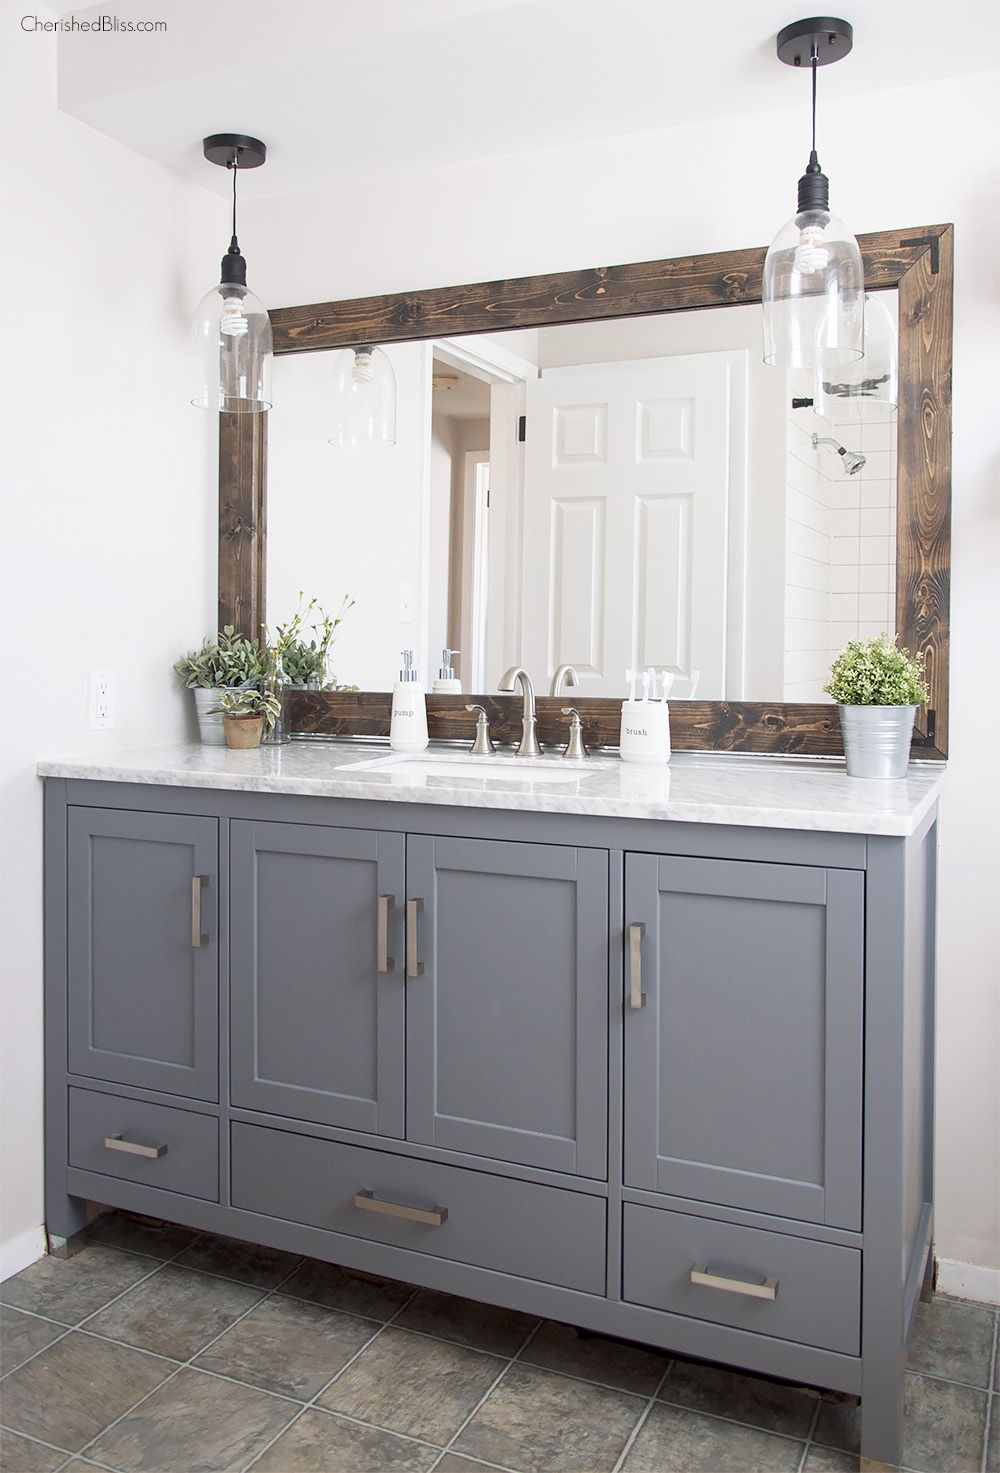 Framed mirror bathroom - Industrial Farmhouse Bathroom Reveal Farmhouse Bathroom Mirrorsframed